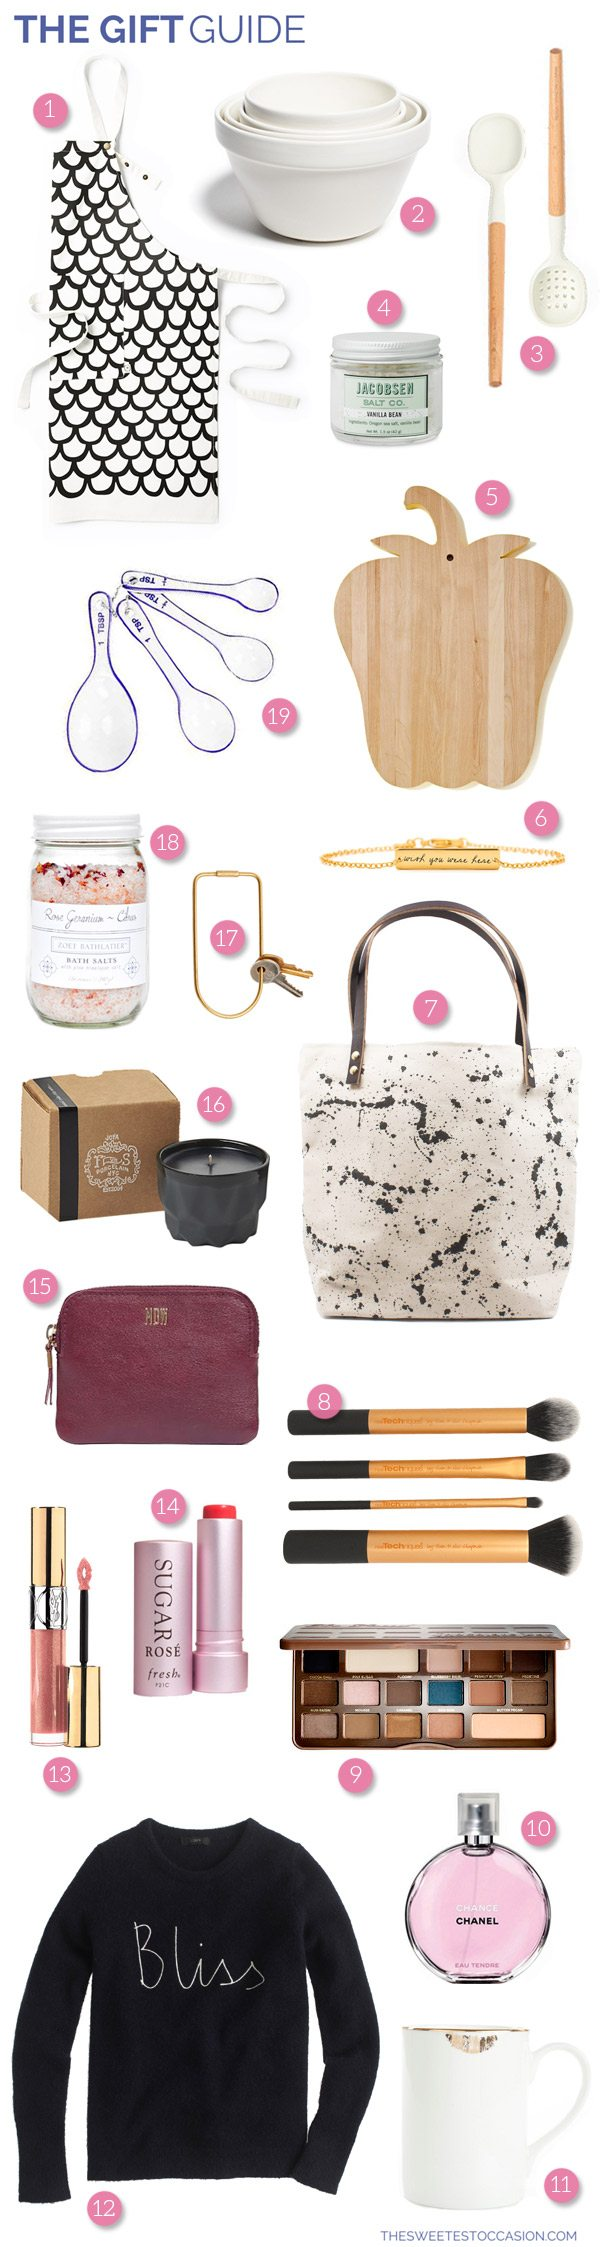 The Gift Guide: Gifts for Her from @cydconverse